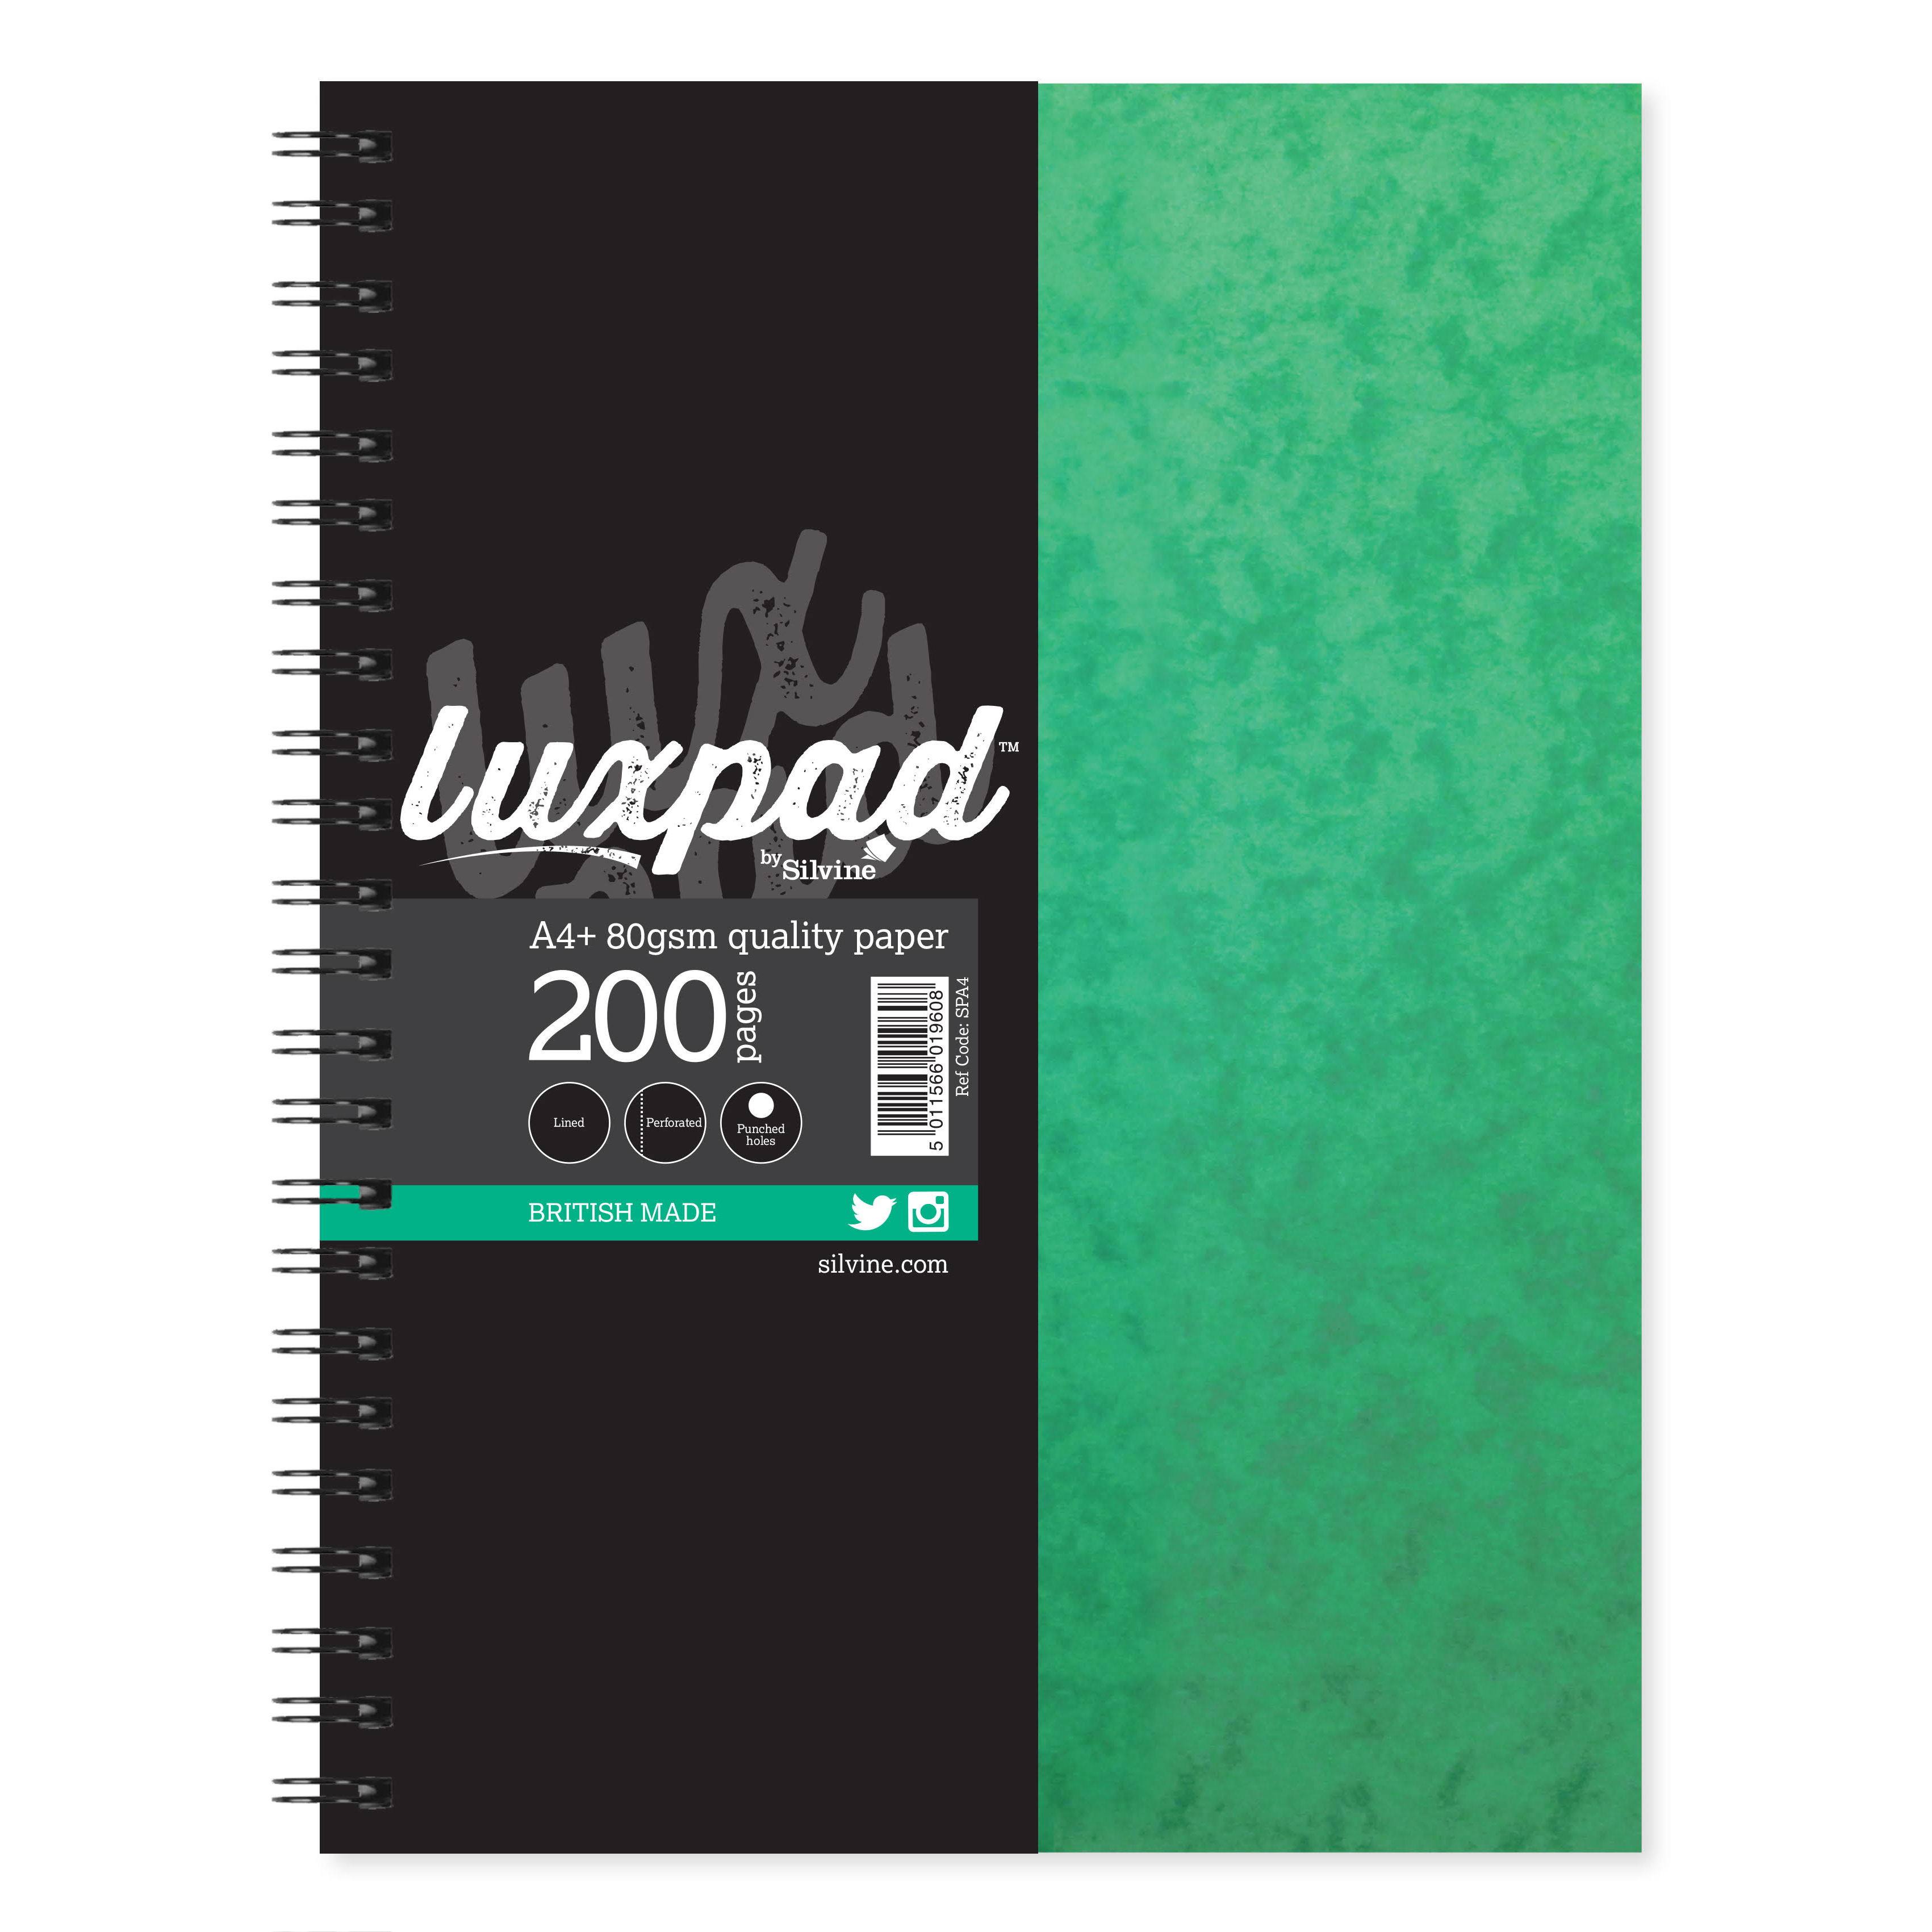 Silvine Notebook Twinwire Sidebound 75gsm Ruled Perf Punched 4 Holes 200pp A4+ Green Ref SPA4 Pack 6